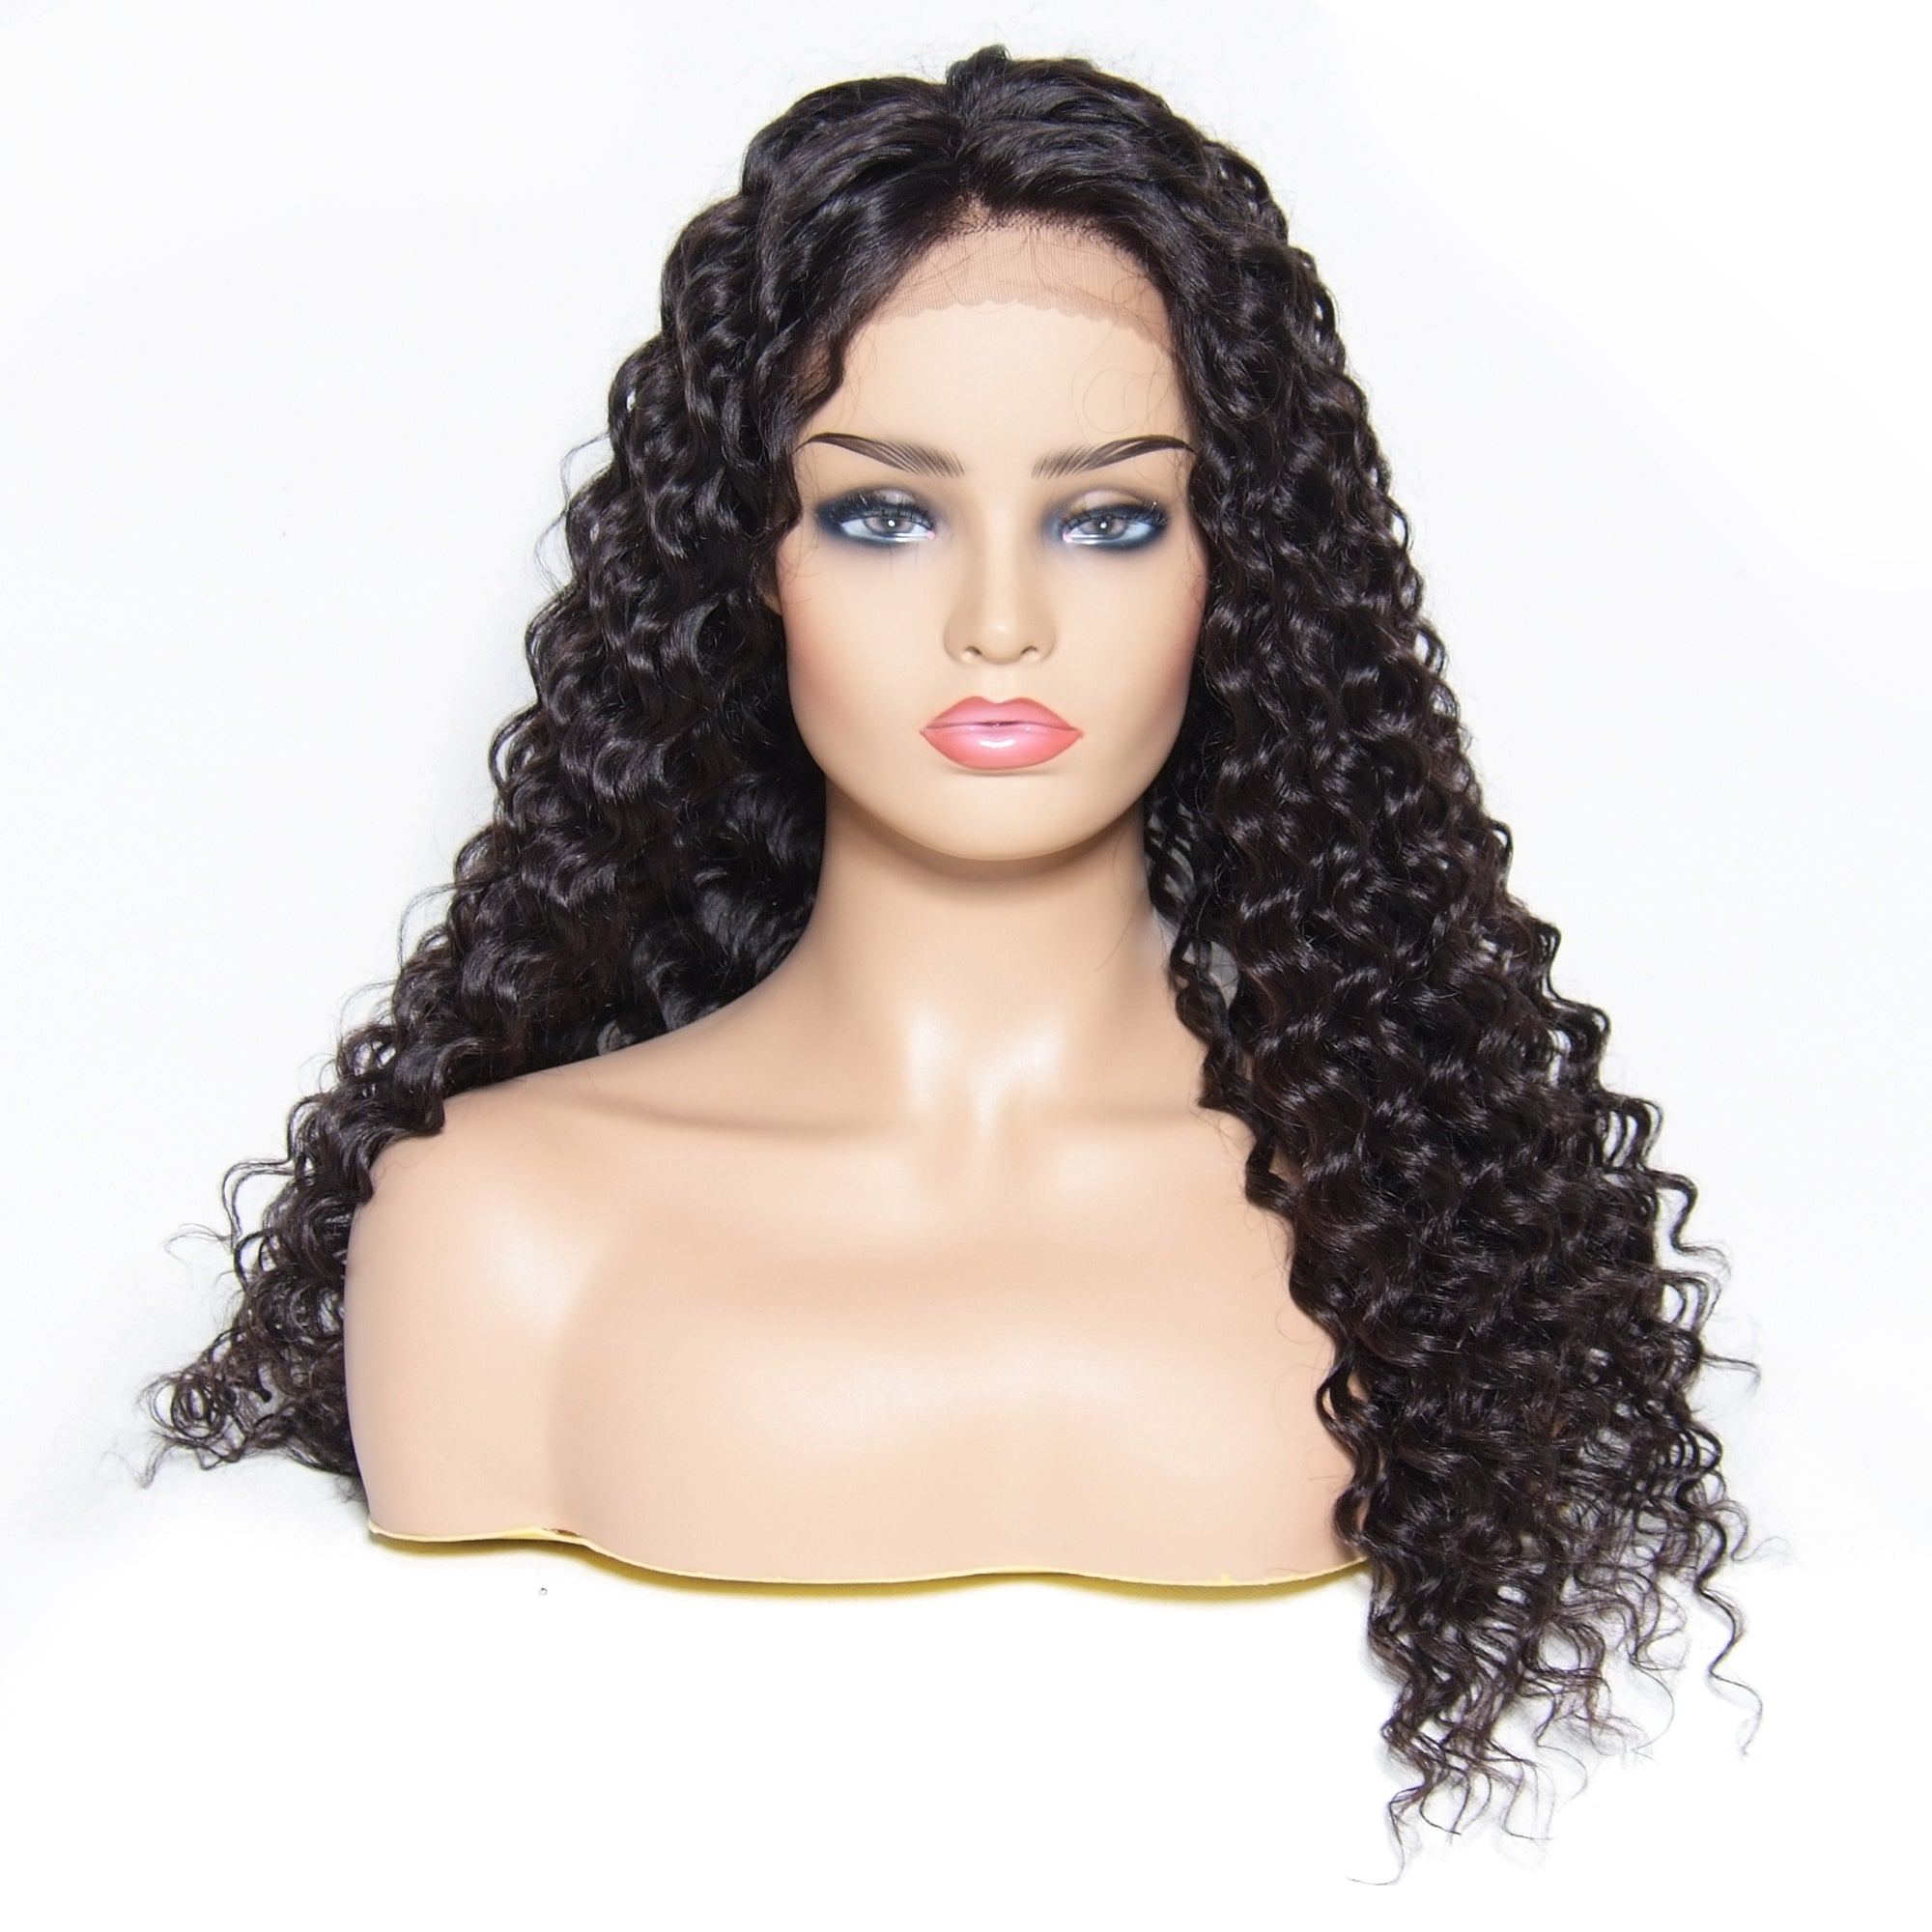 Msbeauty 180% Density Lace Front Deep Wave 2019 Trendy Human Hair Wig For Woman - MSBEAUTY HAIR